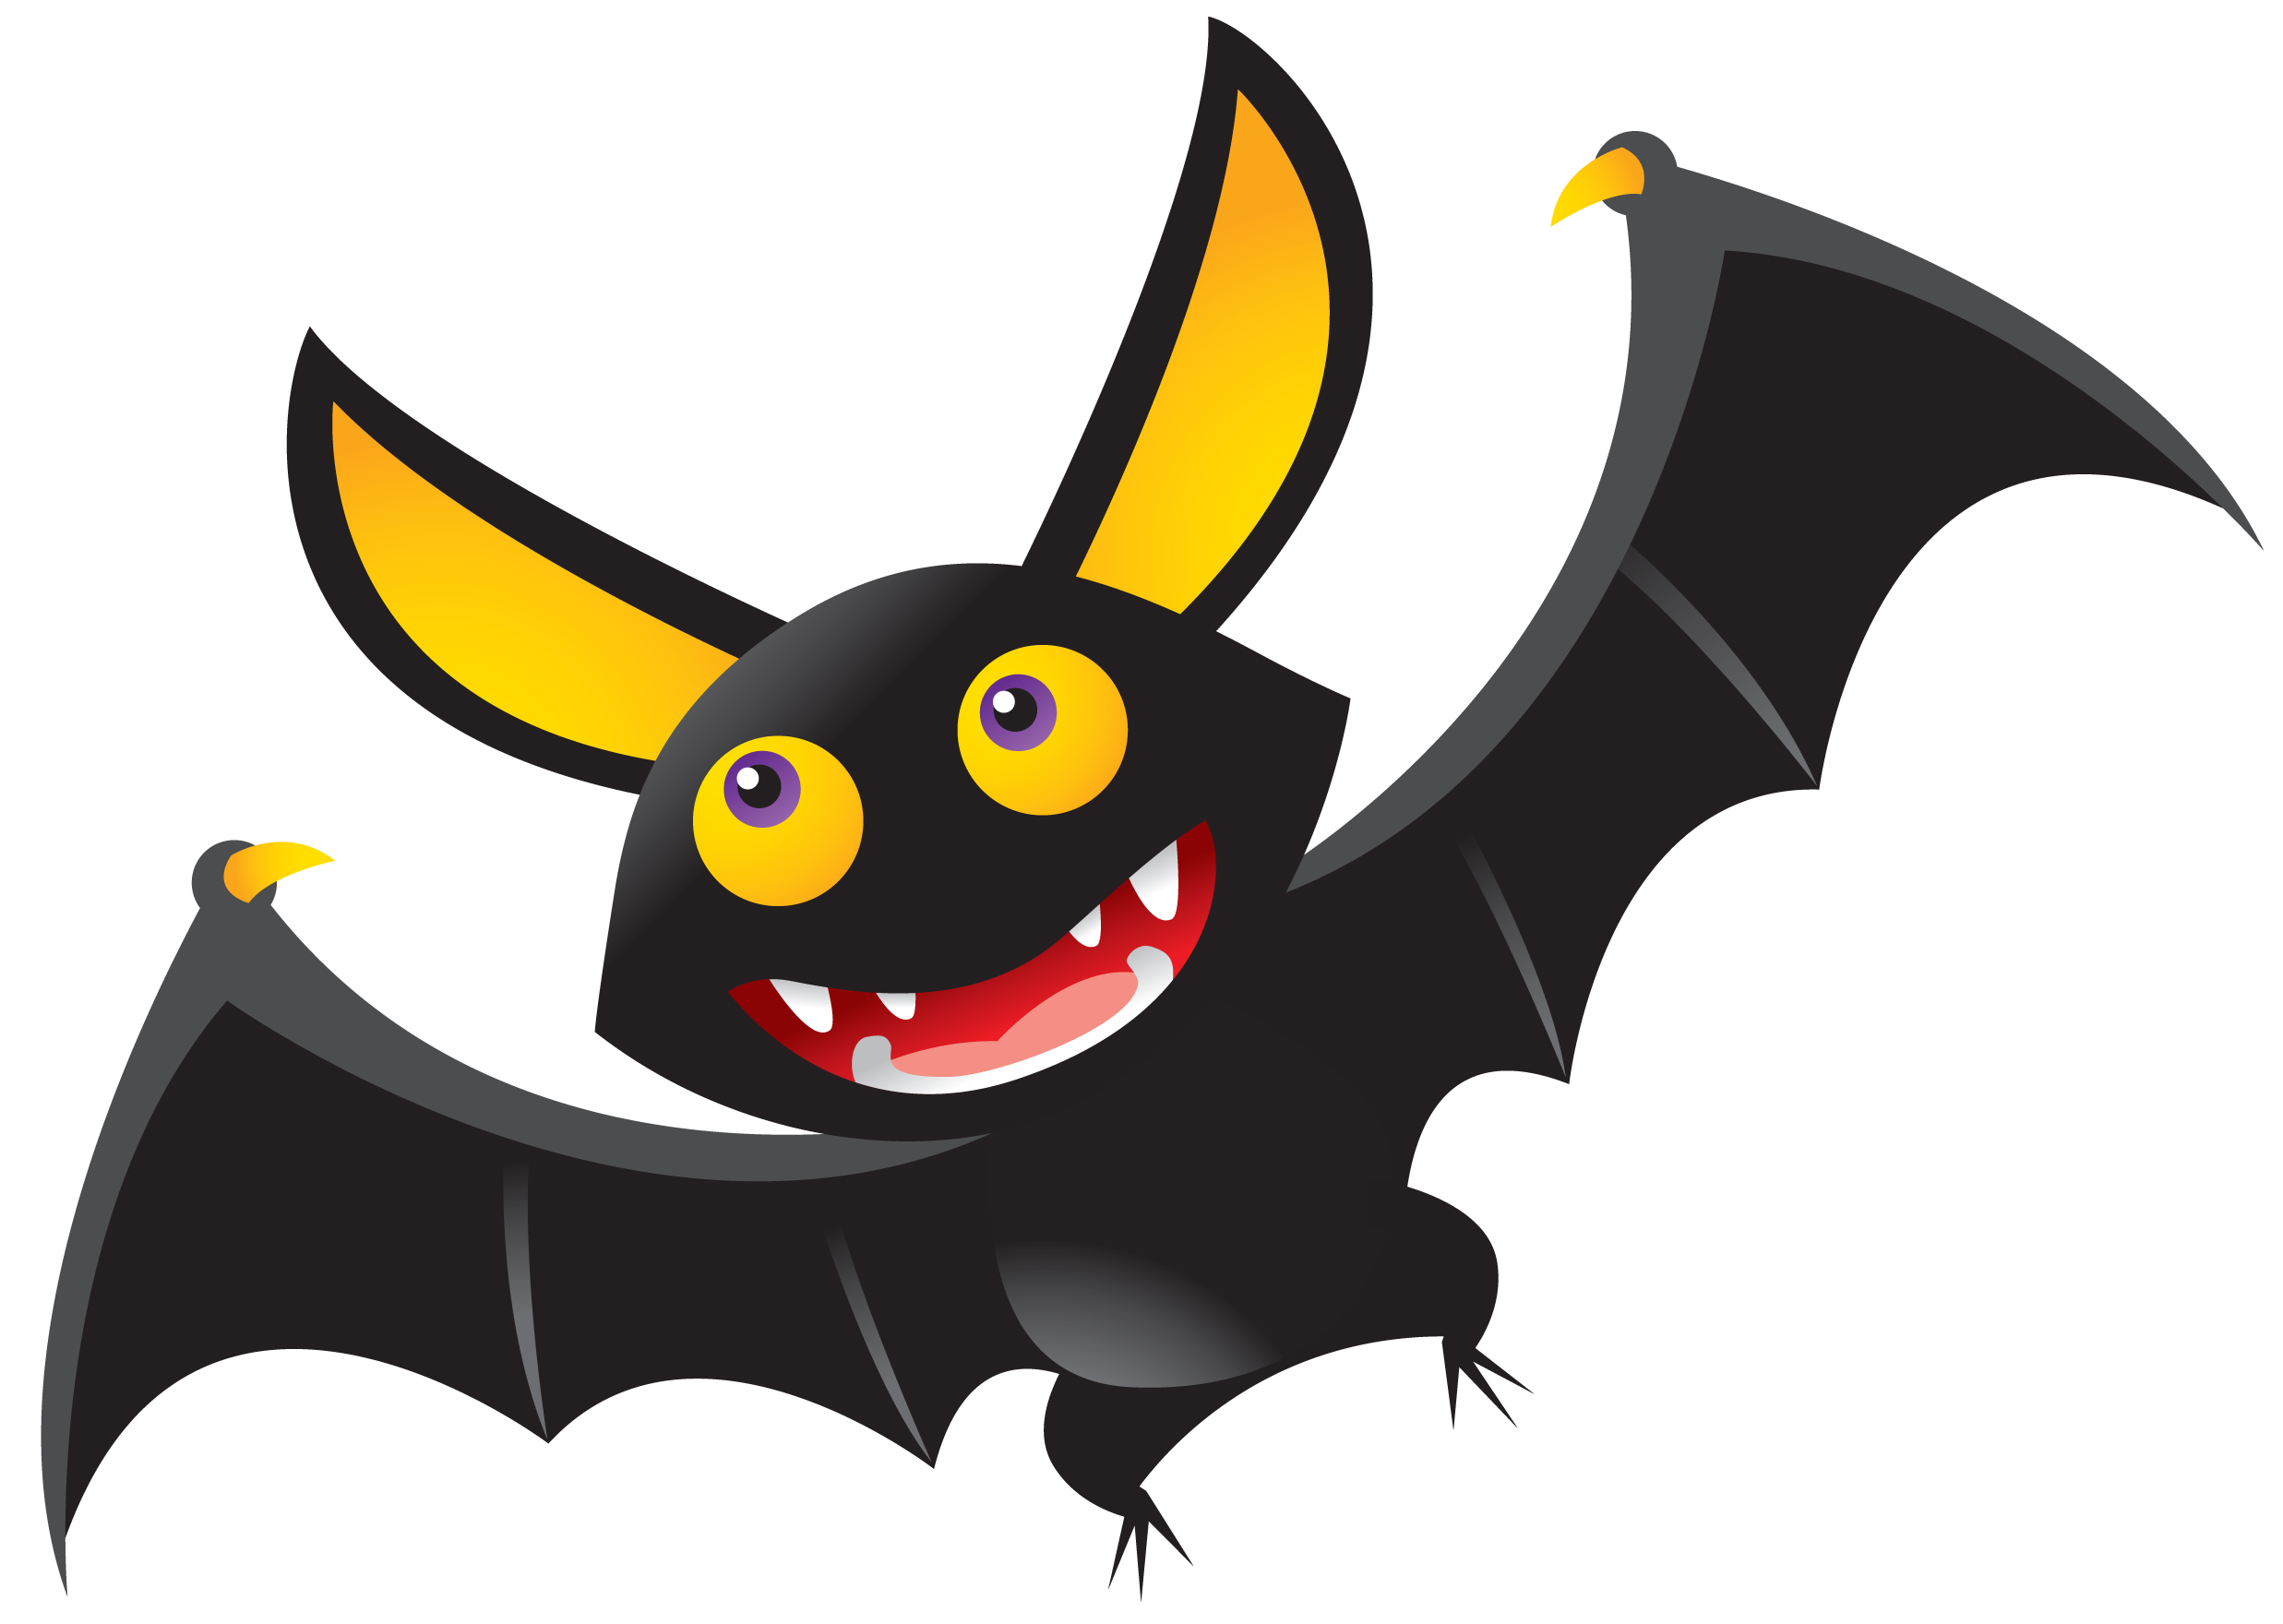 Halloween bats clipart graphic library 9 2 Halloween Bat Png Hd graphic library